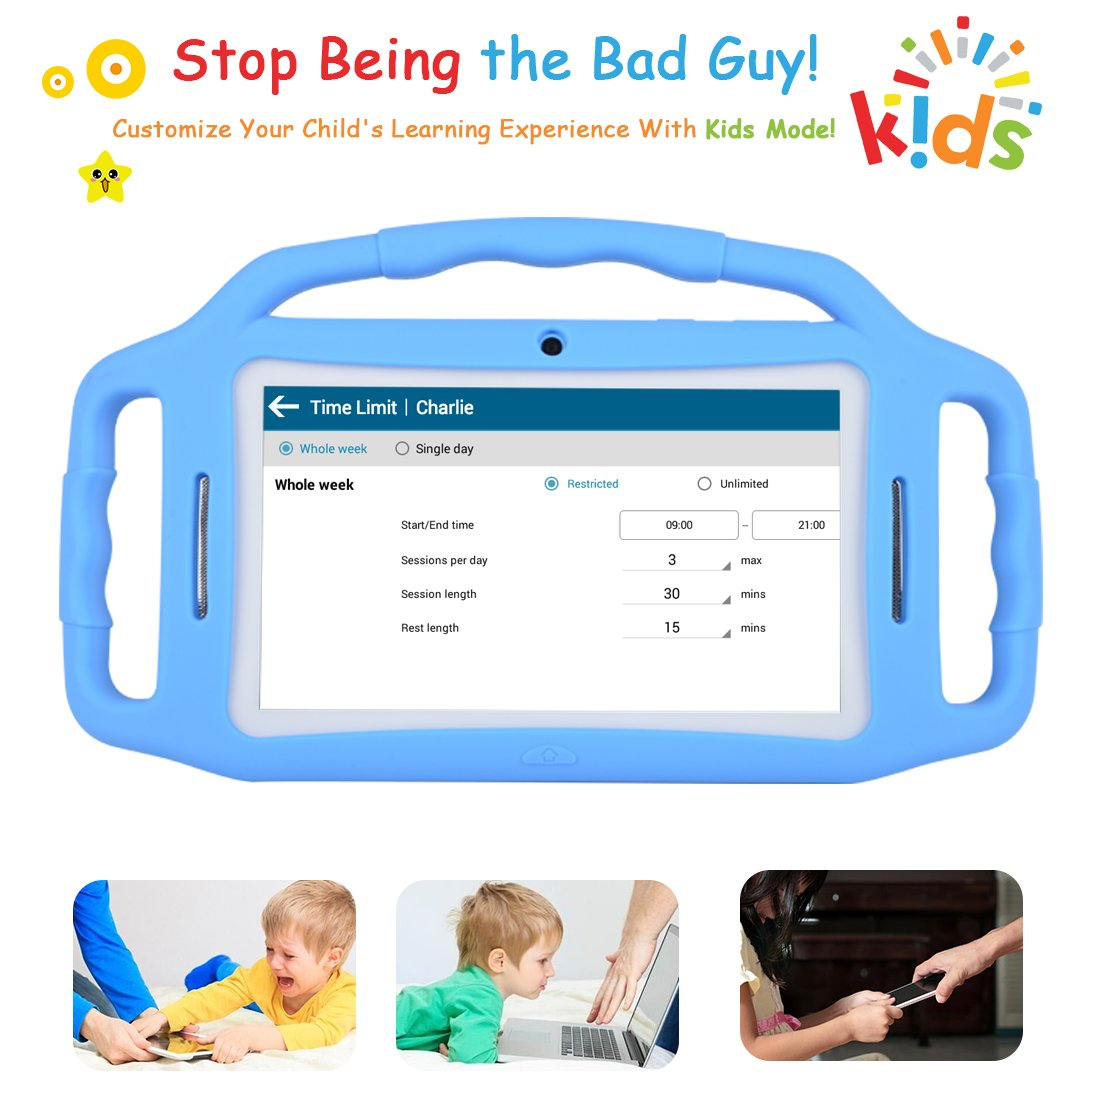 Kids Tablet Android 7 1, 7 Inch, HD Display, Quad Core, Children Tablet,  1GB RAM + 8GB ROM, with WiFi, Dual Camera, Bluetooth, Educational,Touch